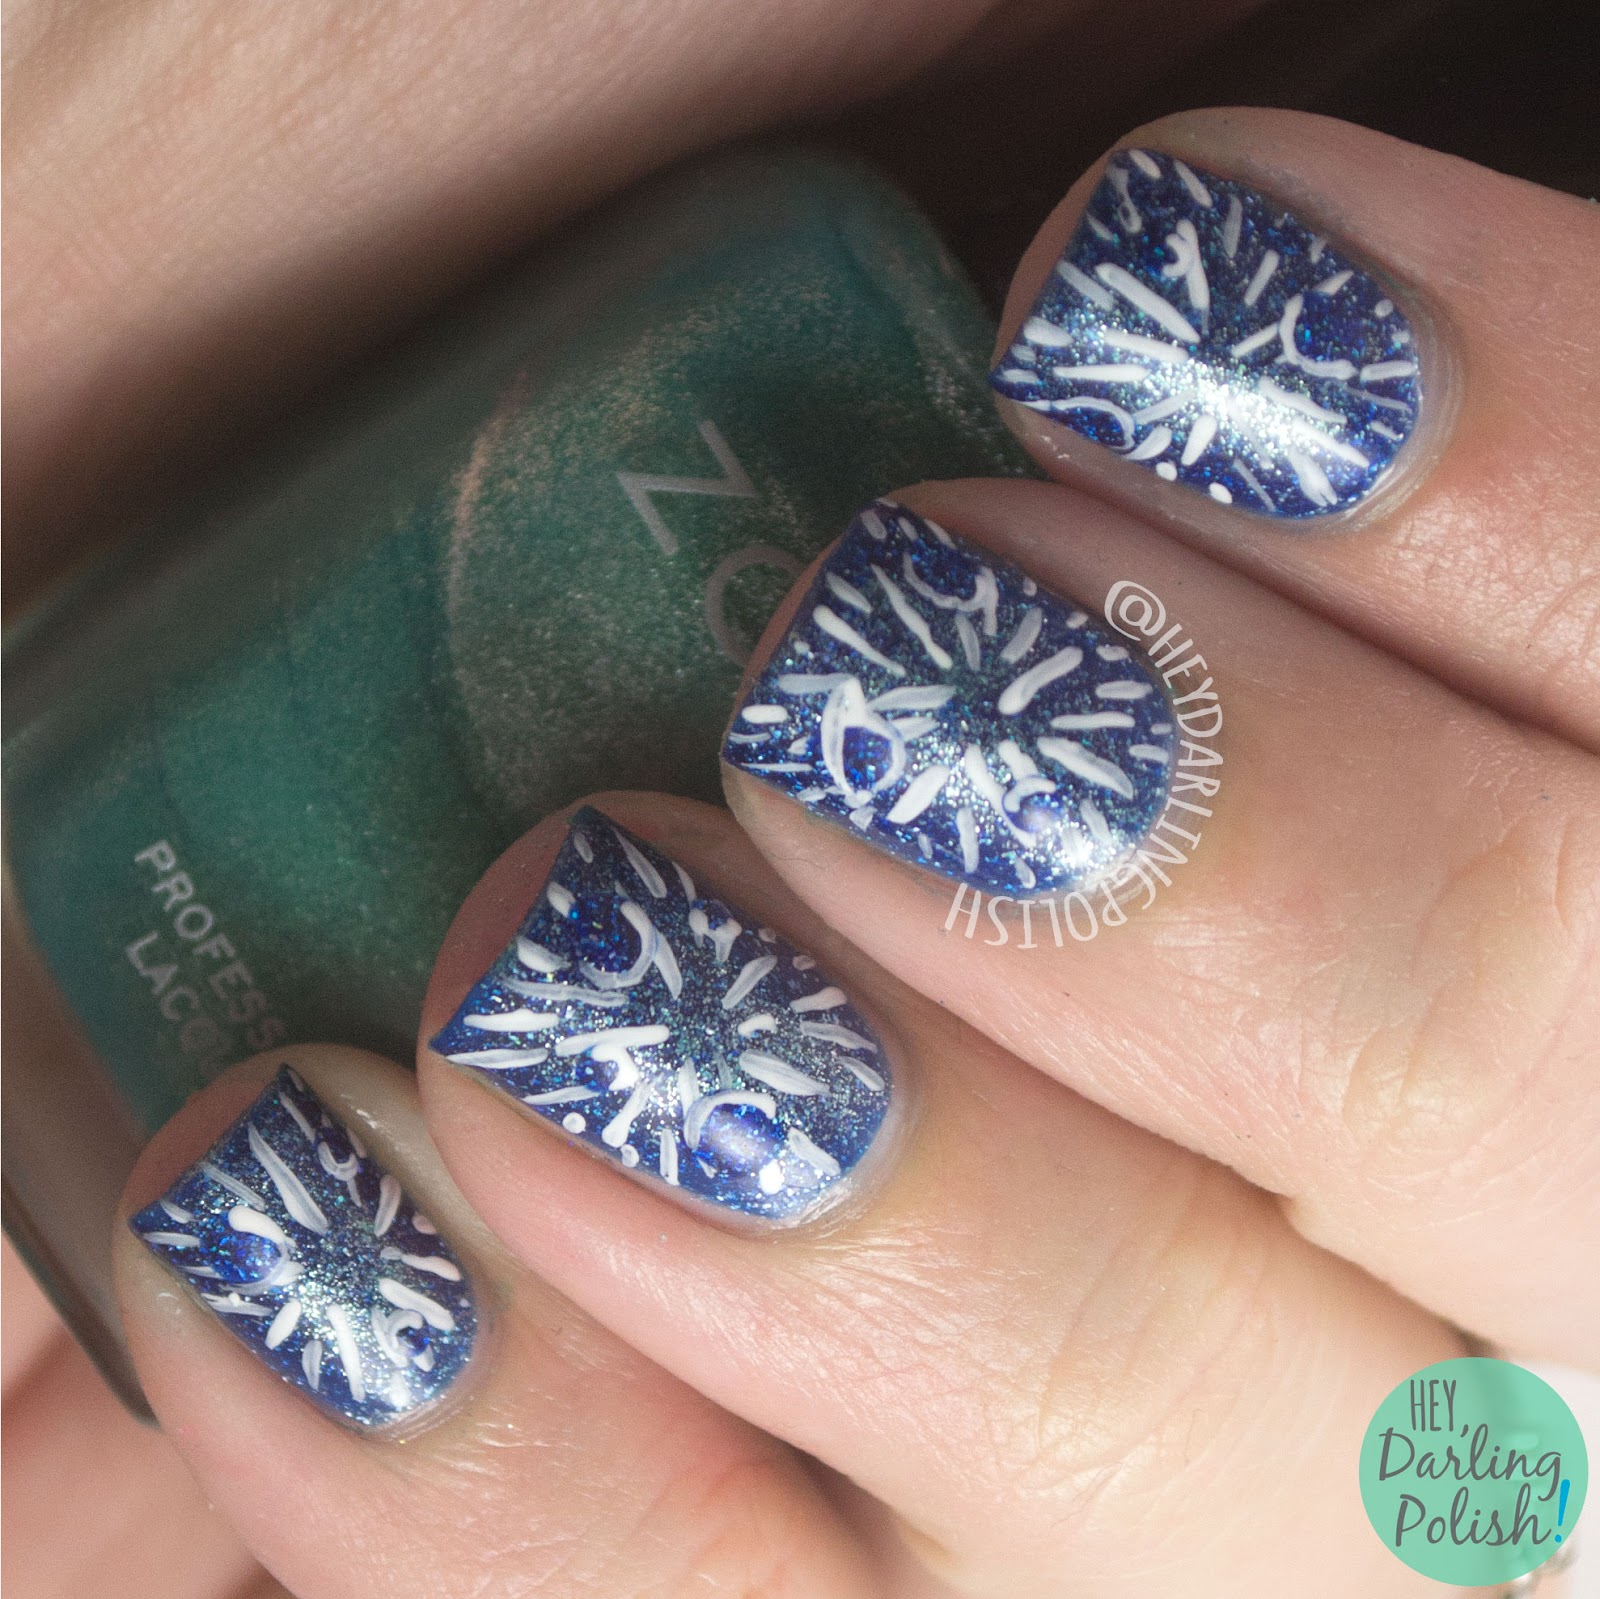 nails, nail art, nail polish, blue, hey darling polish, galaxy, constellations, poster,